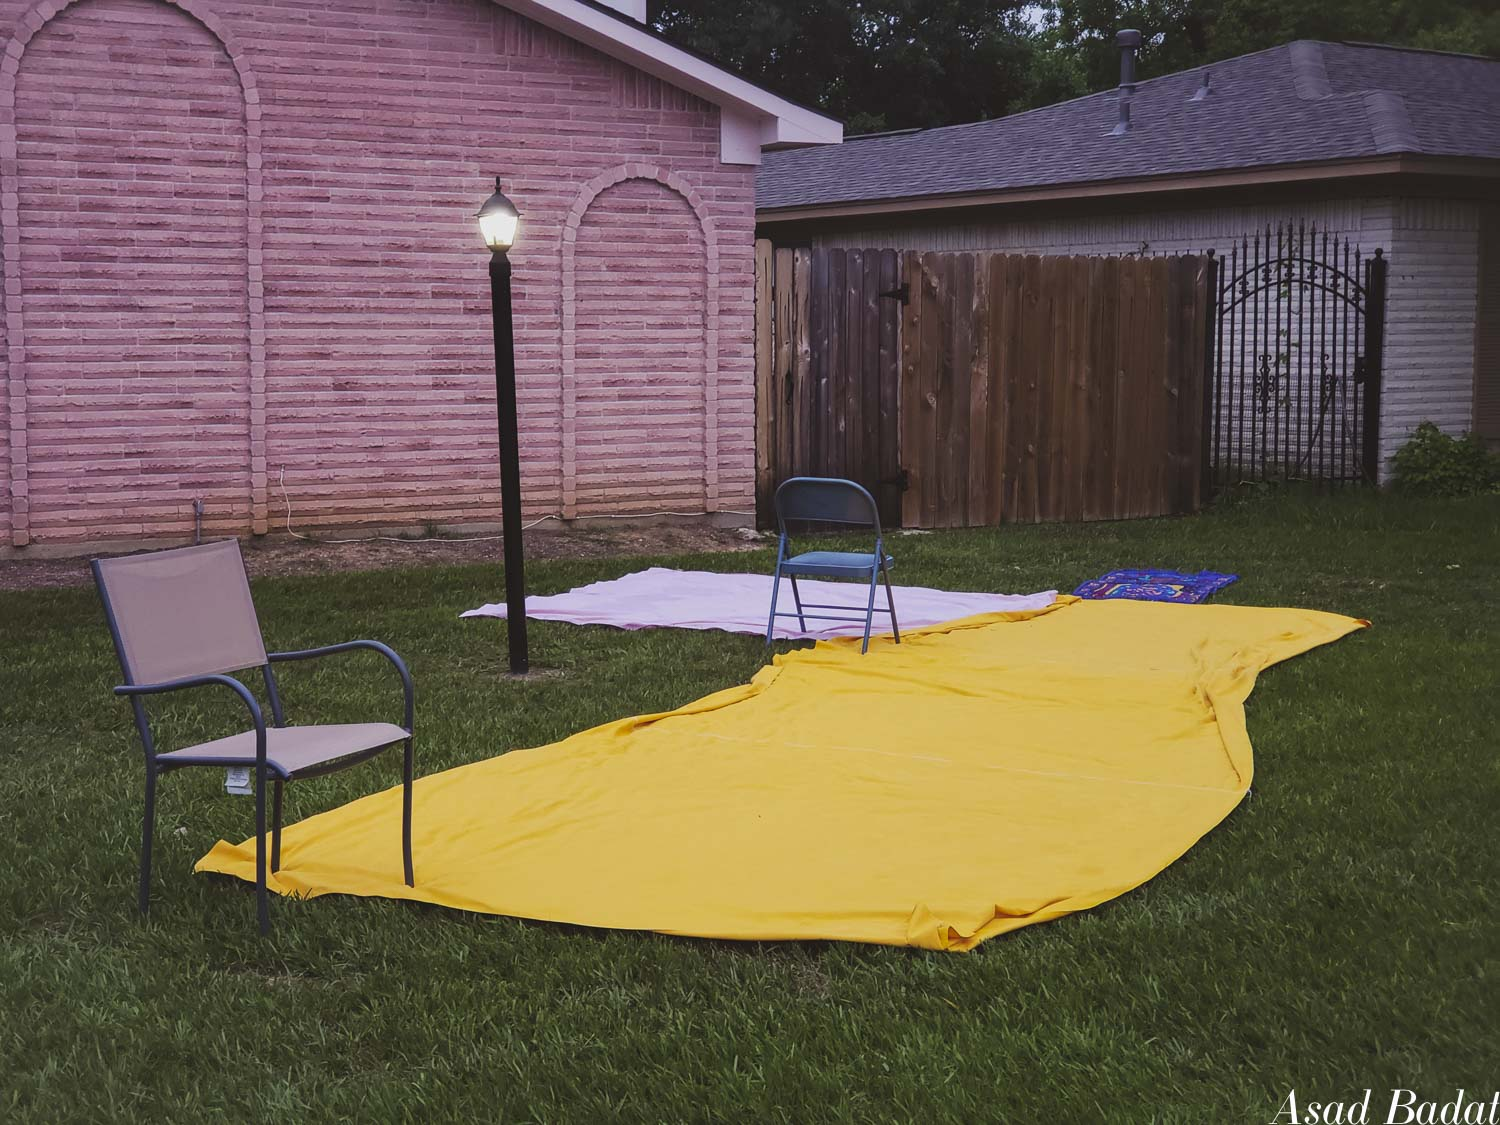 The chairs were used to pin the sheets to the ground. Also, the yellow sheet looks like American cheese.